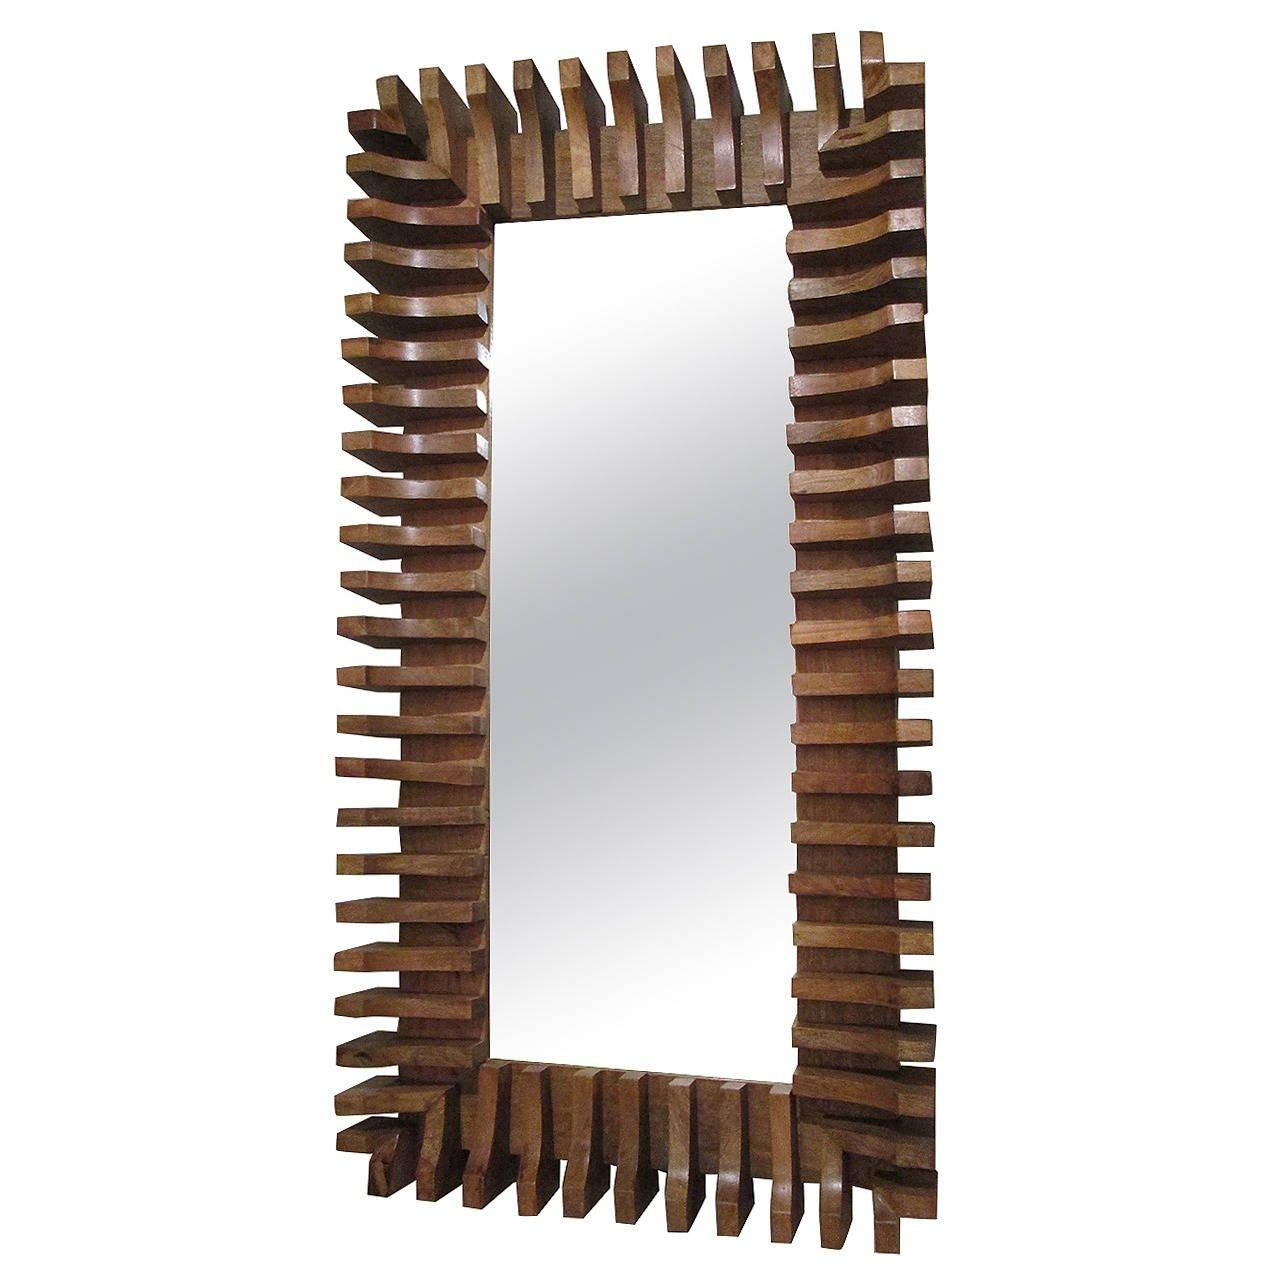 Unusual Slatted Wooden Mirror For Sale At 1Stdibs Throughout Wooden Mirror (Photo 8 of 20)